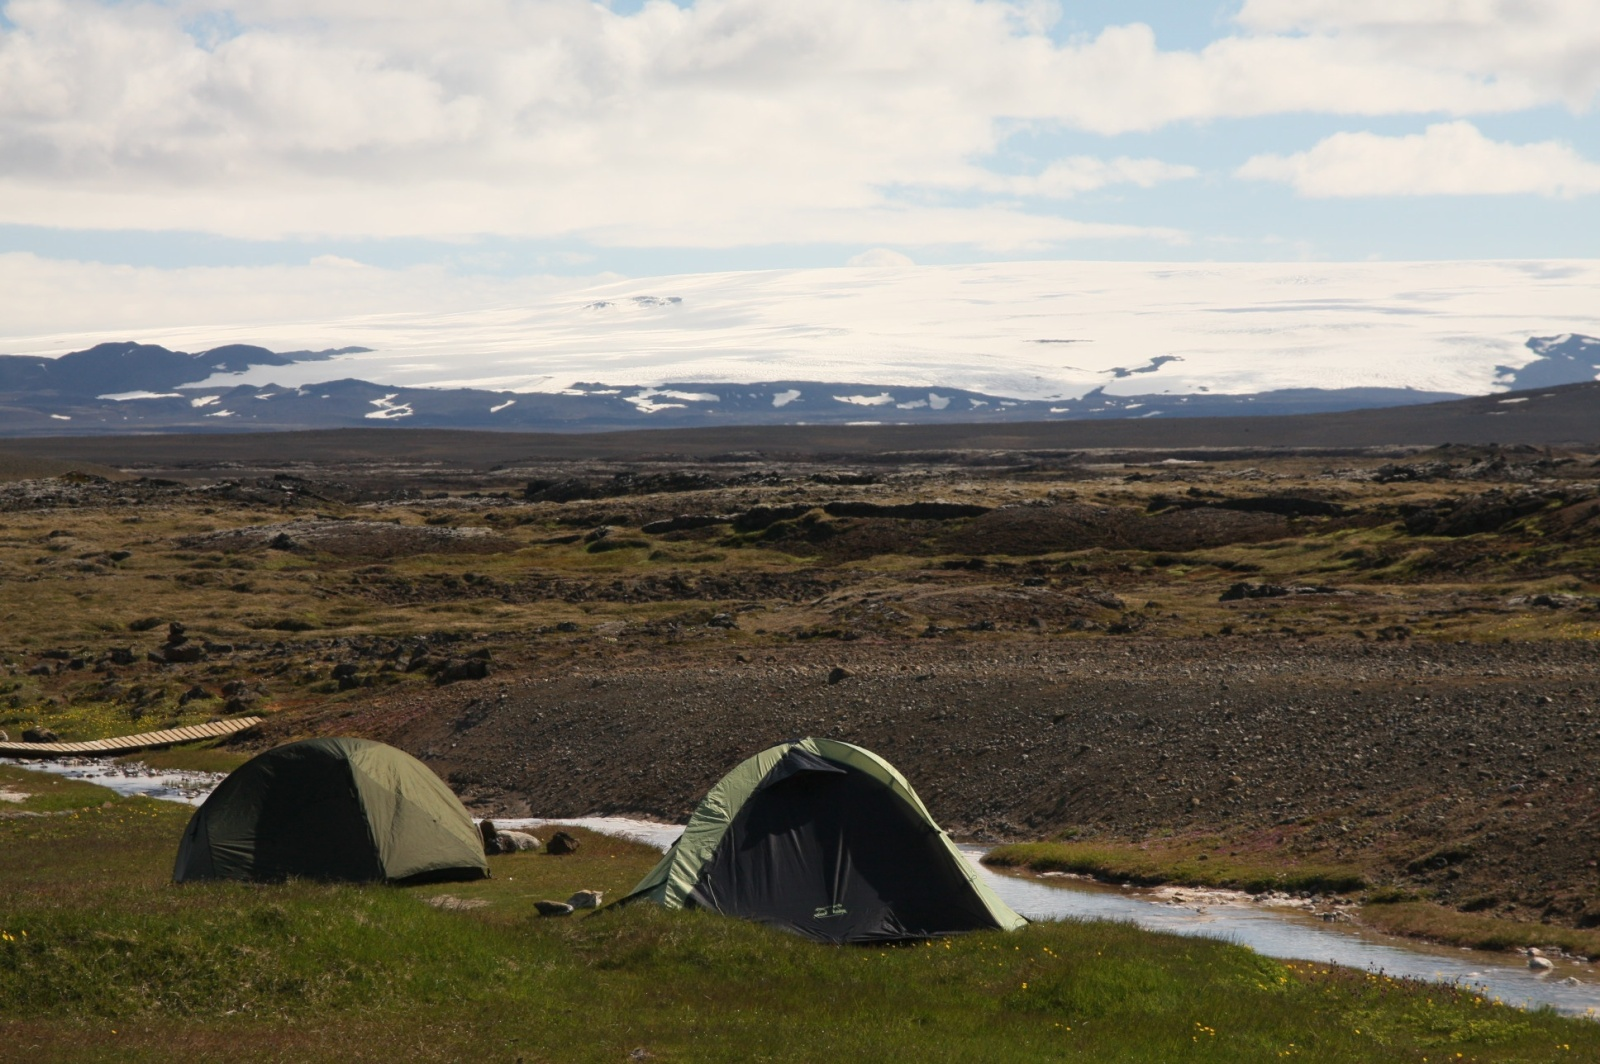 Camping with a view to glaciers, on the shore of hot spring, which doesn't help the cold air during the night